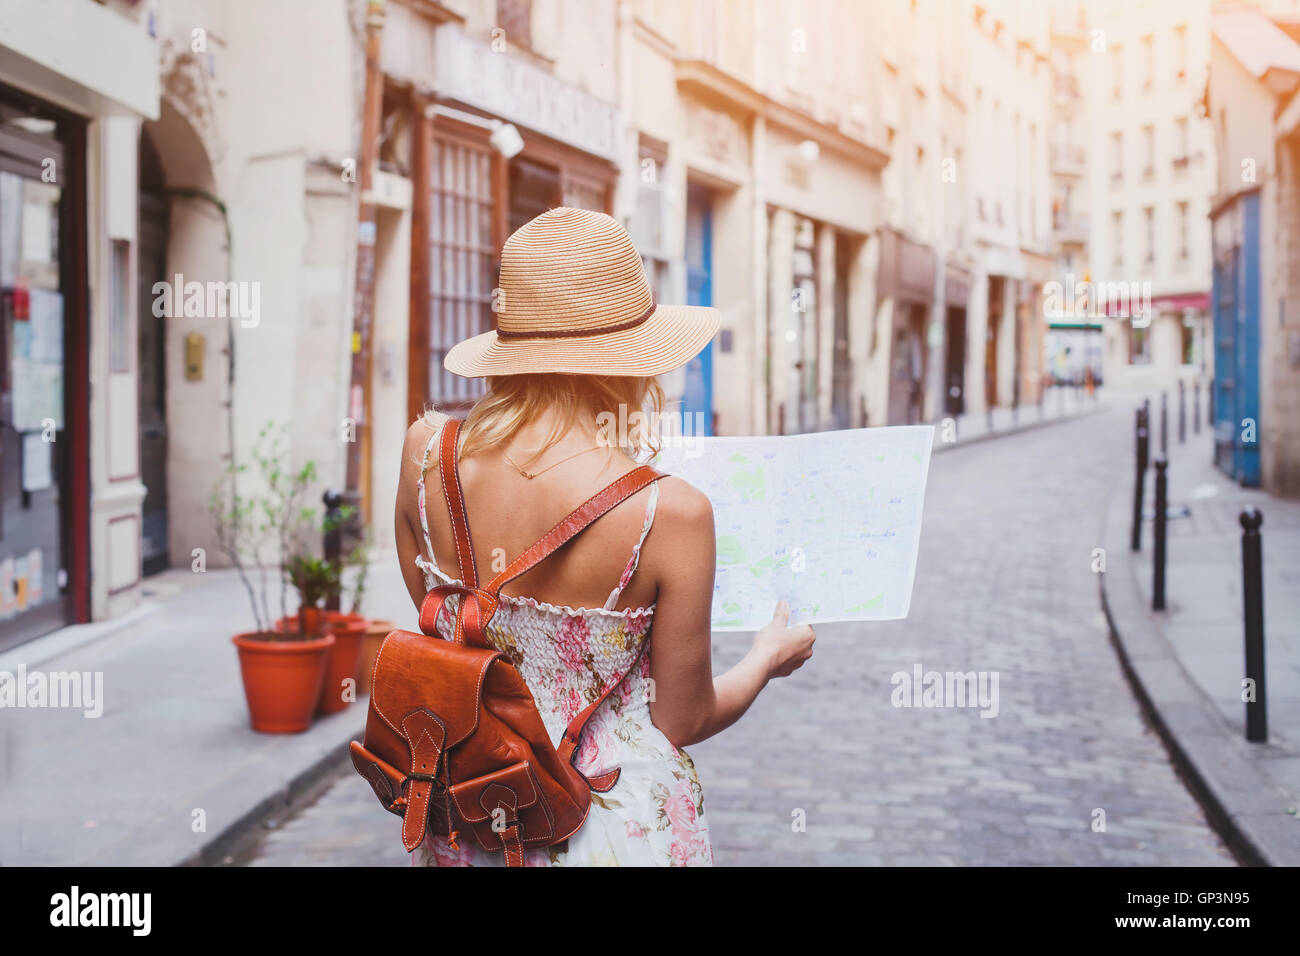 travel guide, tourism in Europe, woman tourist with map on the street - Stock Image